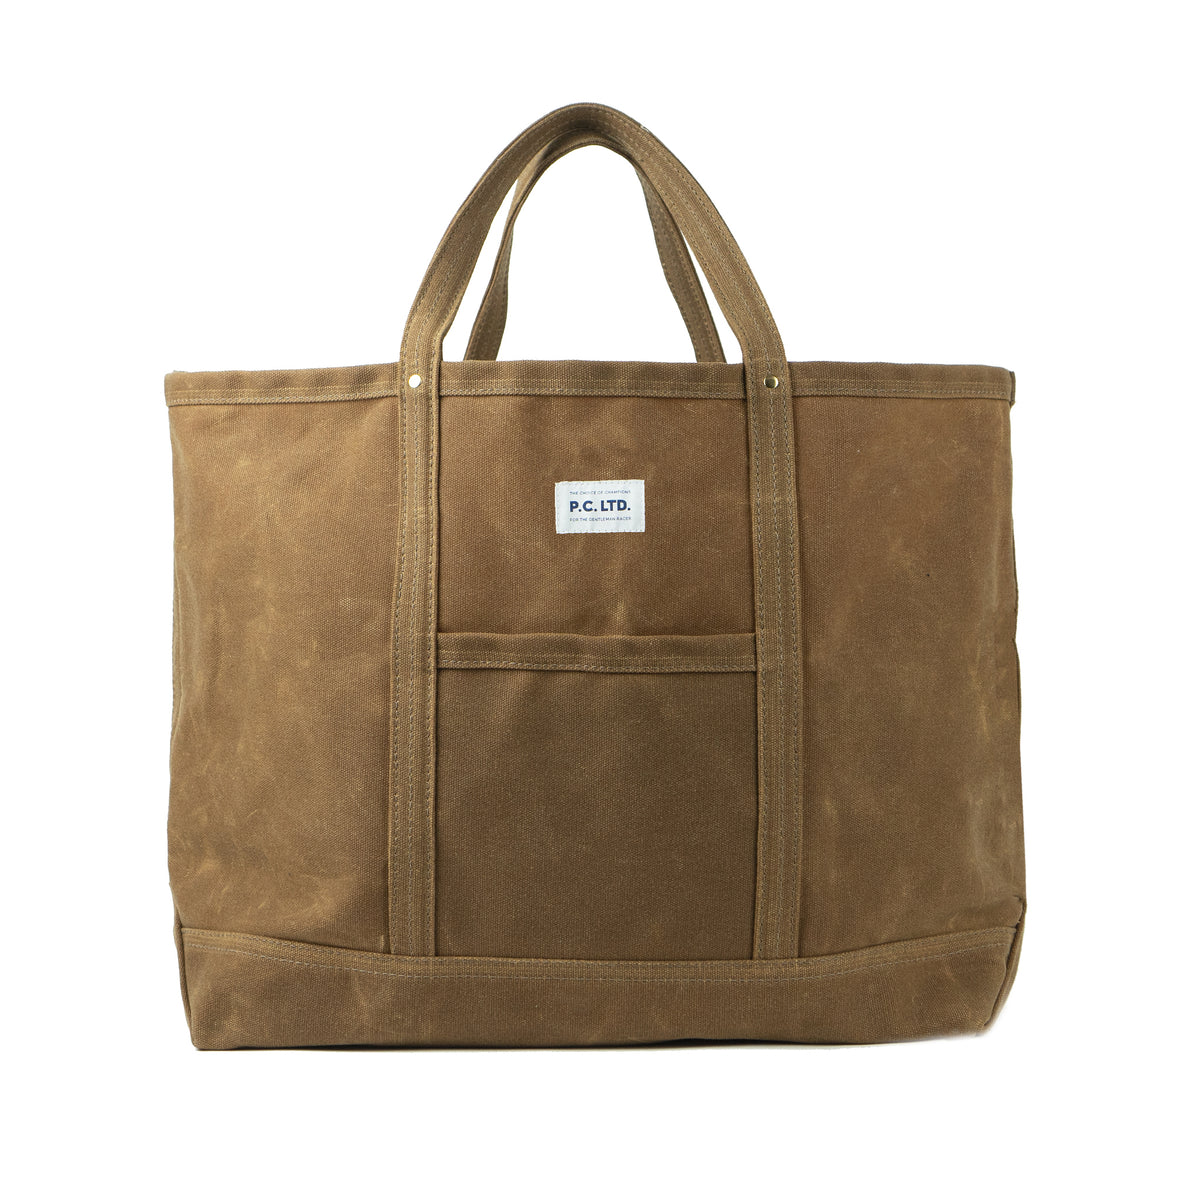 WAX CANVAS TOTE BAG BROWN